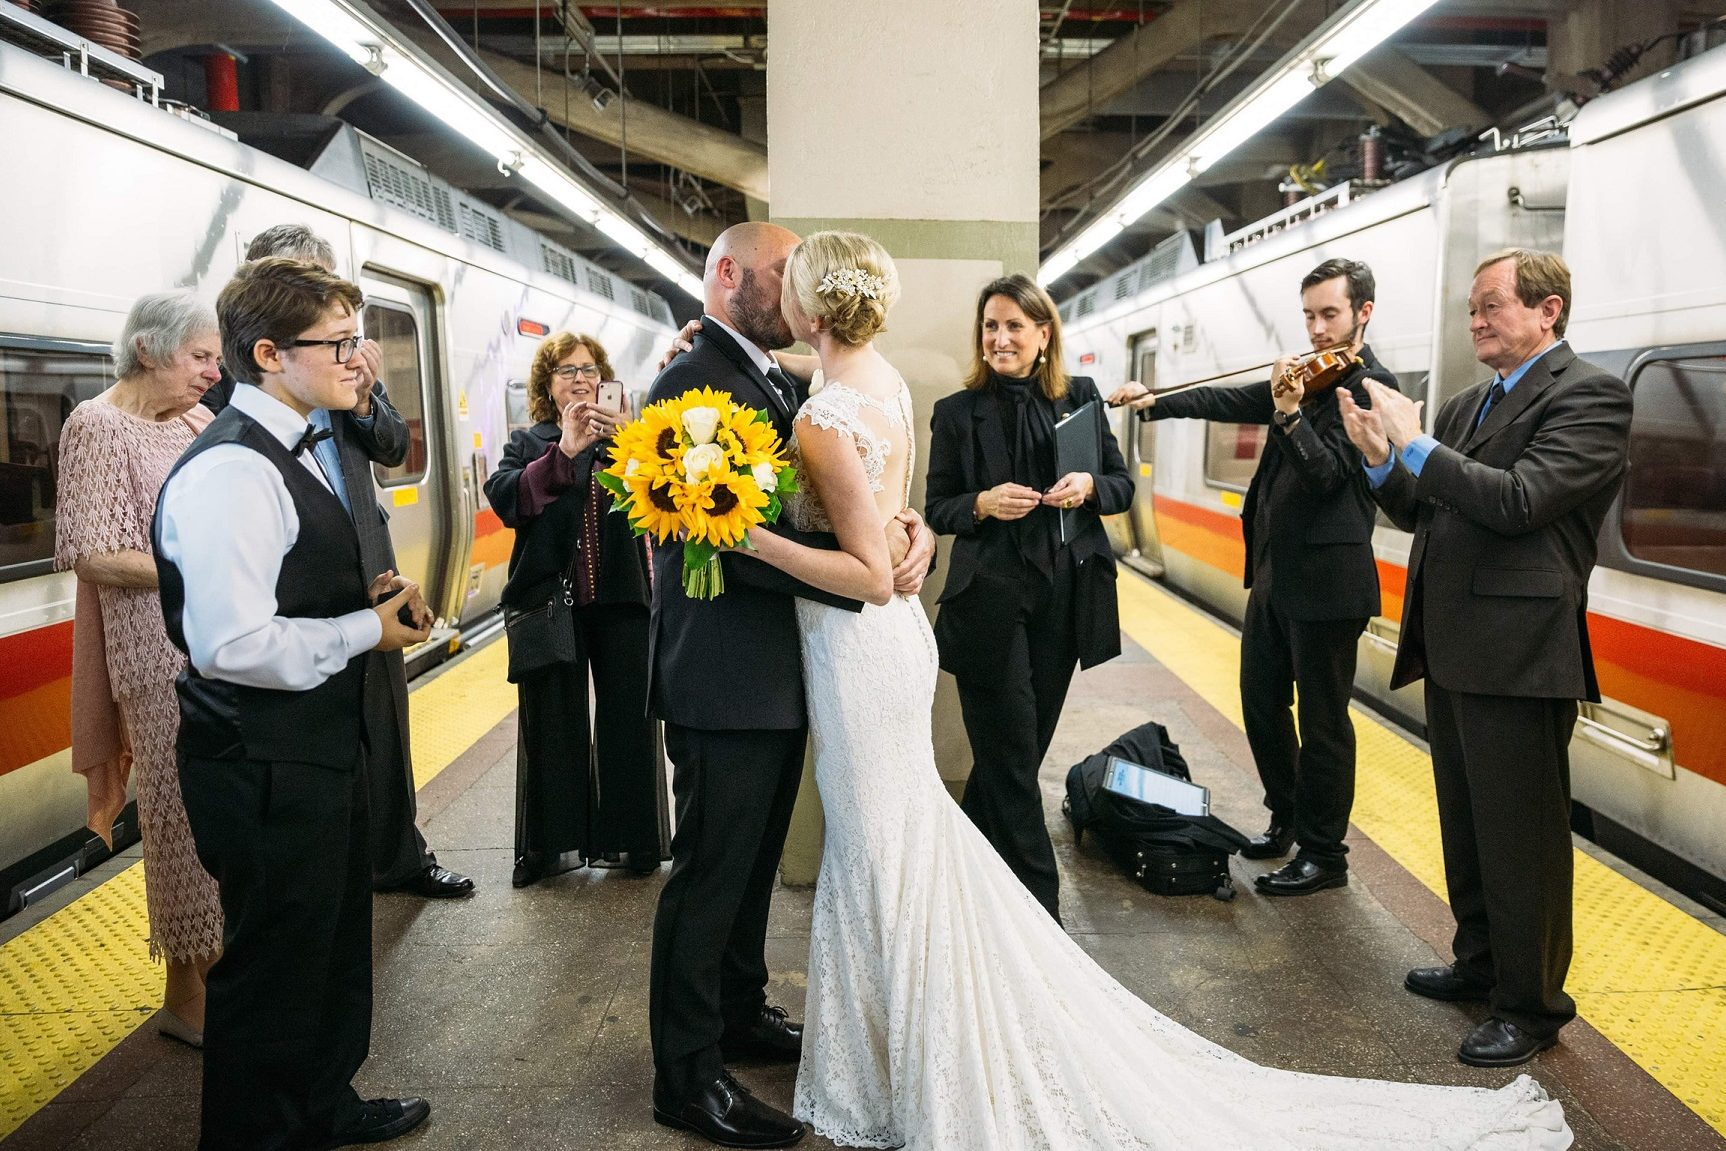 Subway-wedding-Lisa-Traina-New-York-City-Marriage-Officiant